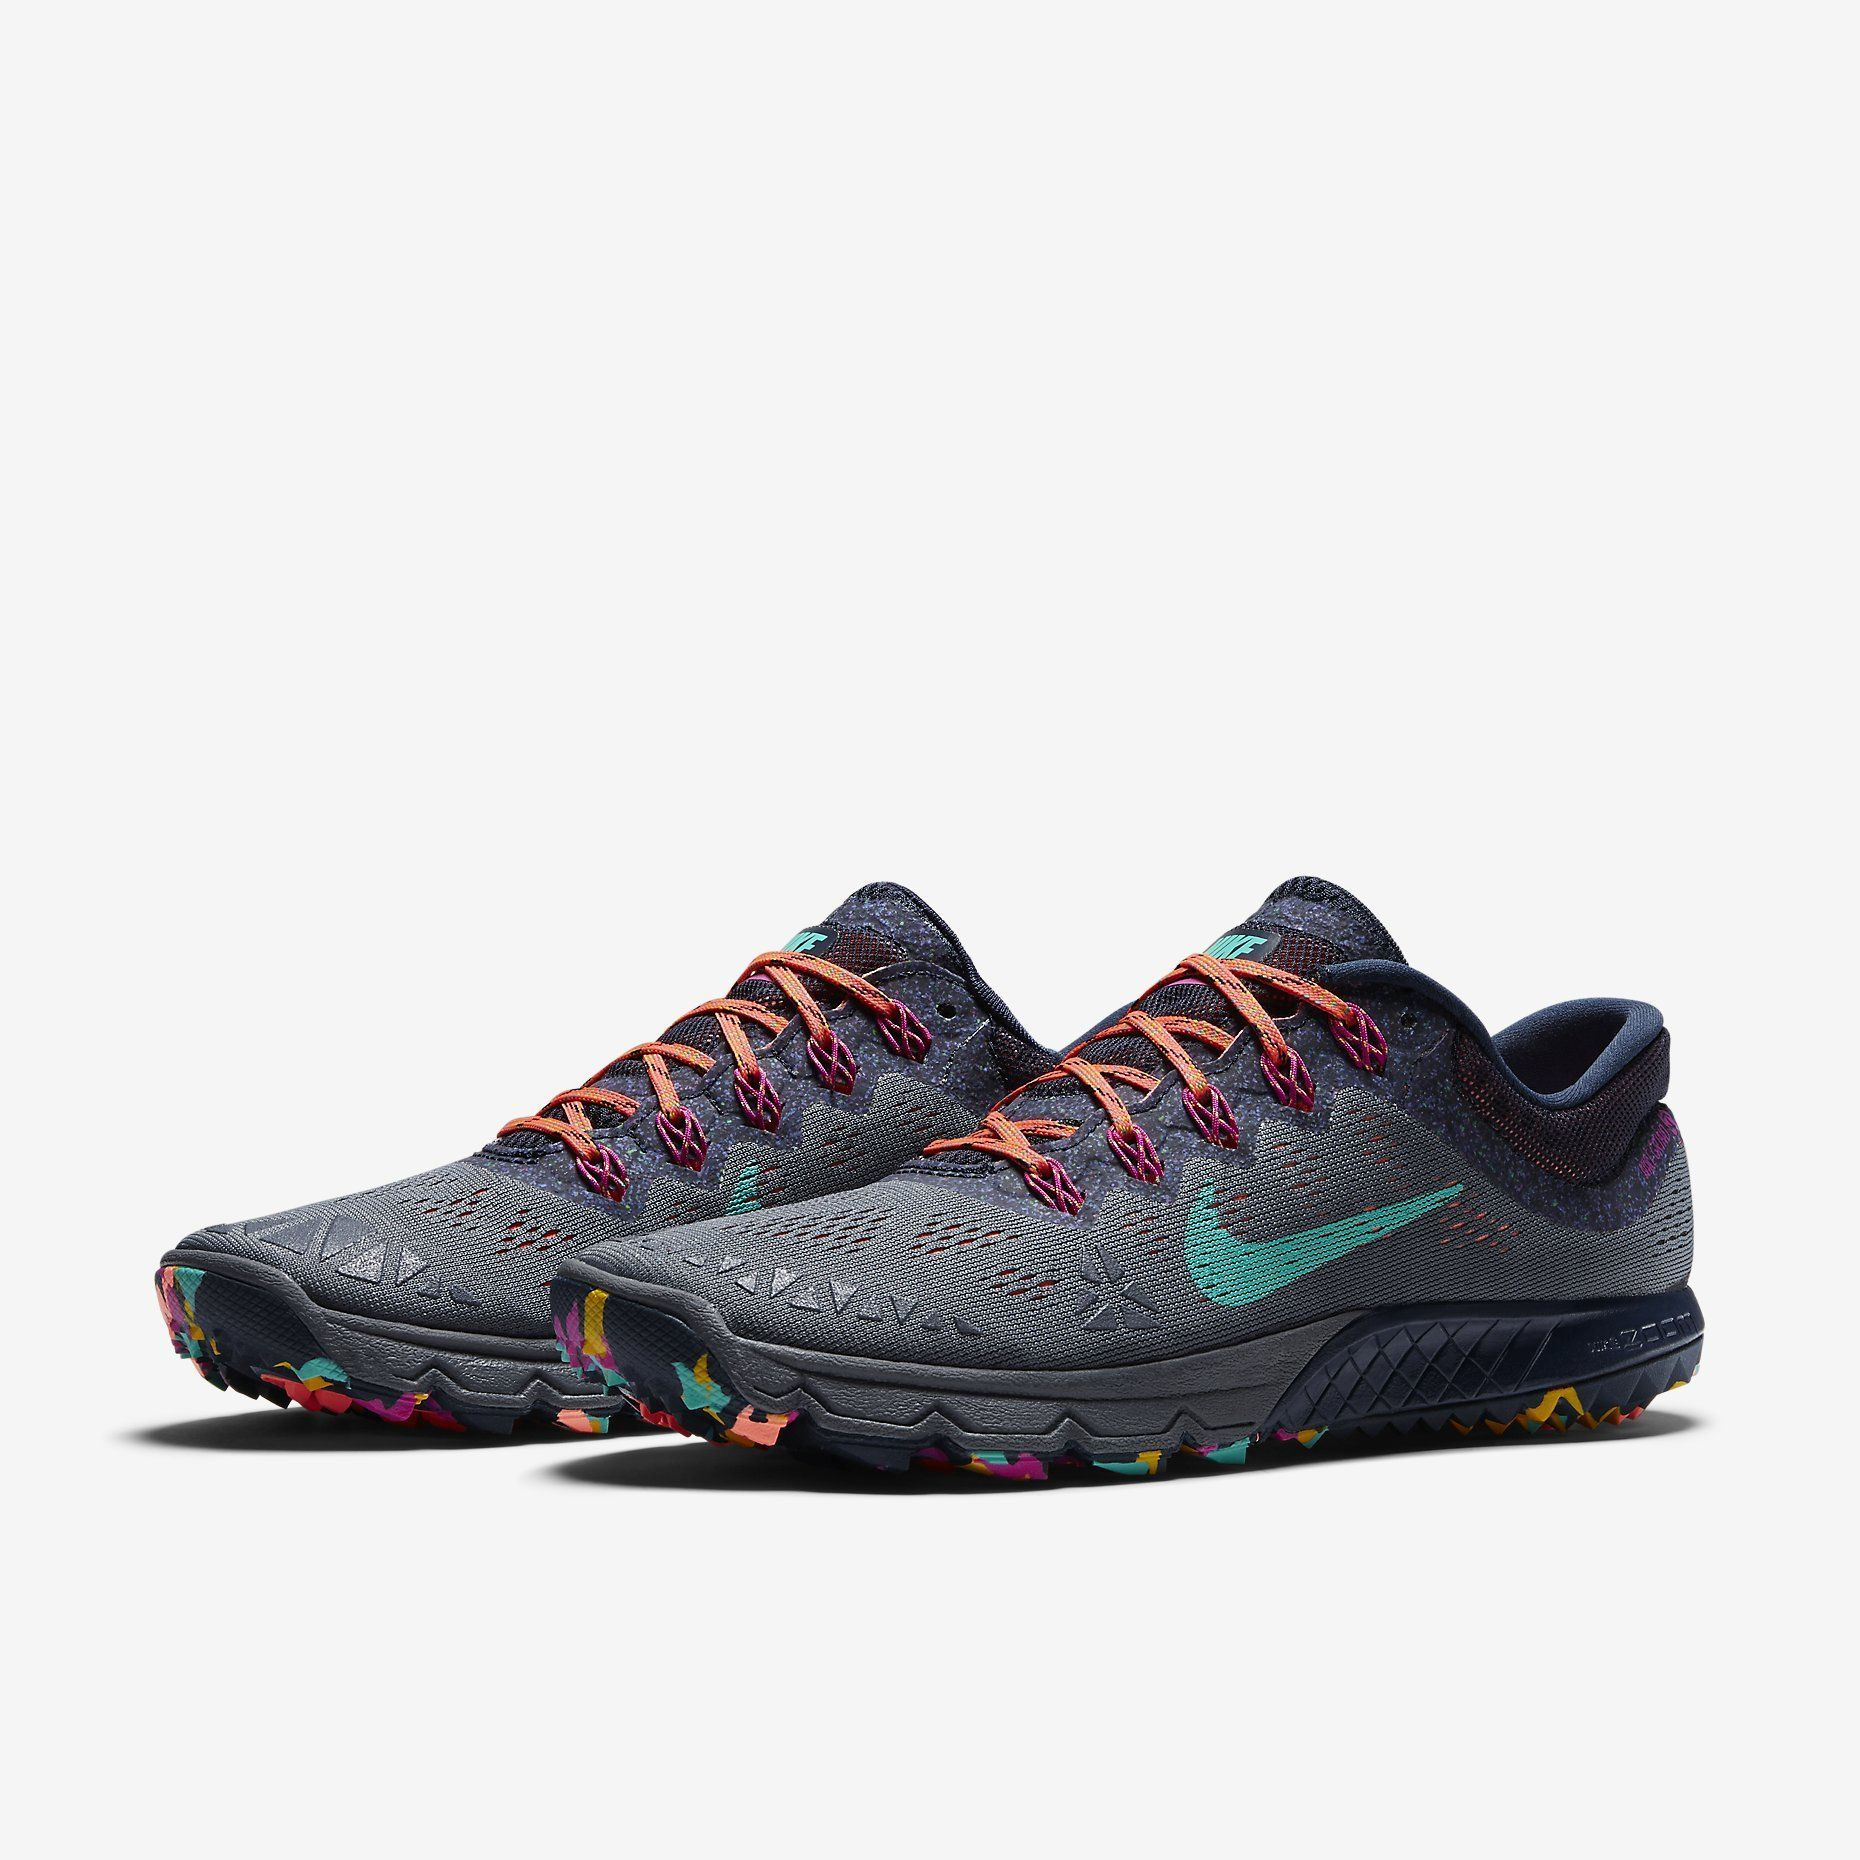 huge selection of 5524e ae699 Nike Zoom Terra Kiger 2 Women s Running Shoe. Trail Running Collection   great for running and hiking  trailrunningshoes